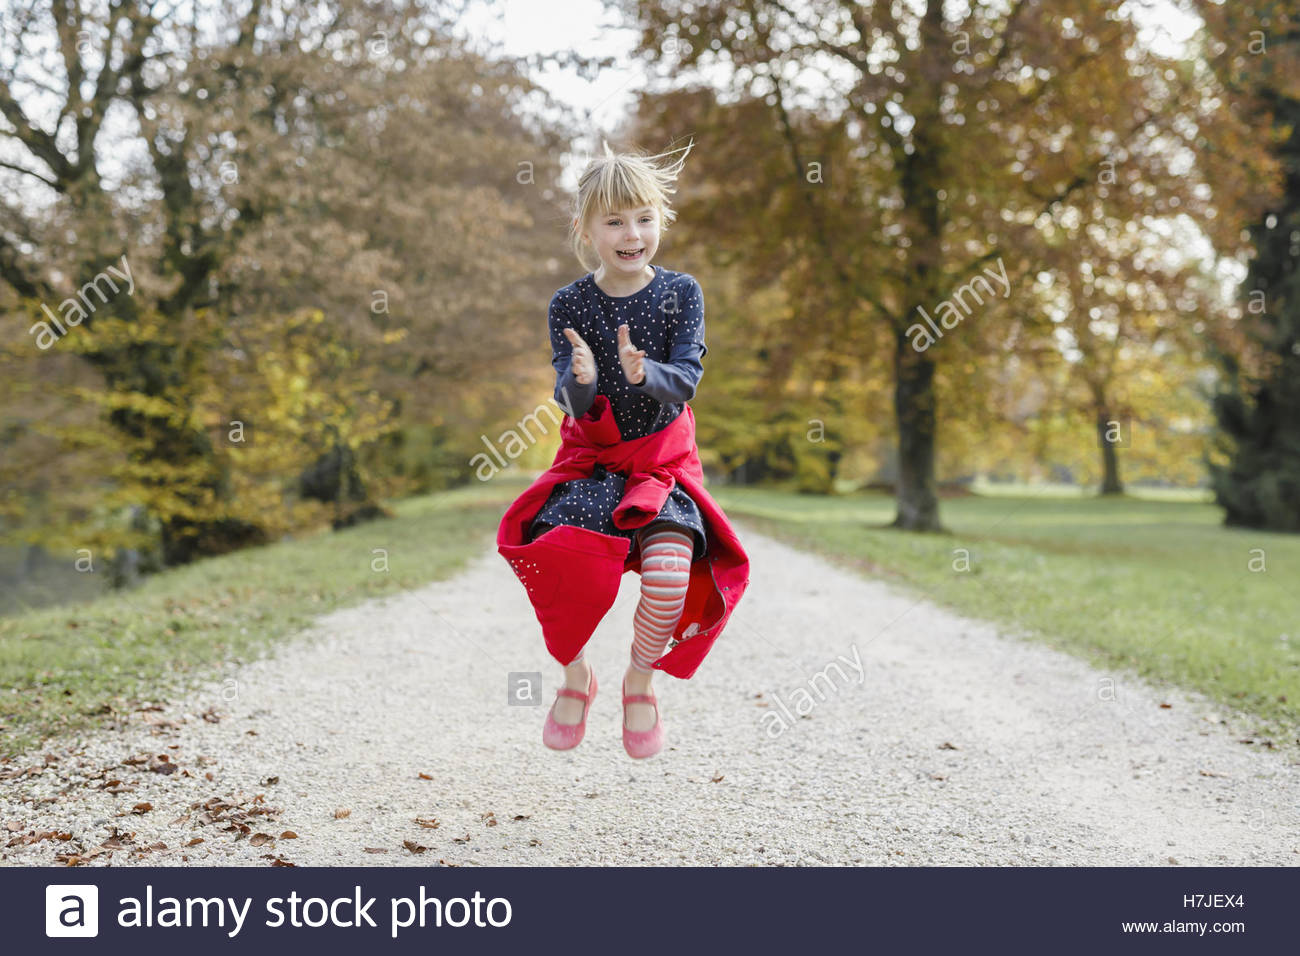 Professionnels de l'automne. Petite fille en manteau rouge jumping in autumn park. Photo Stock